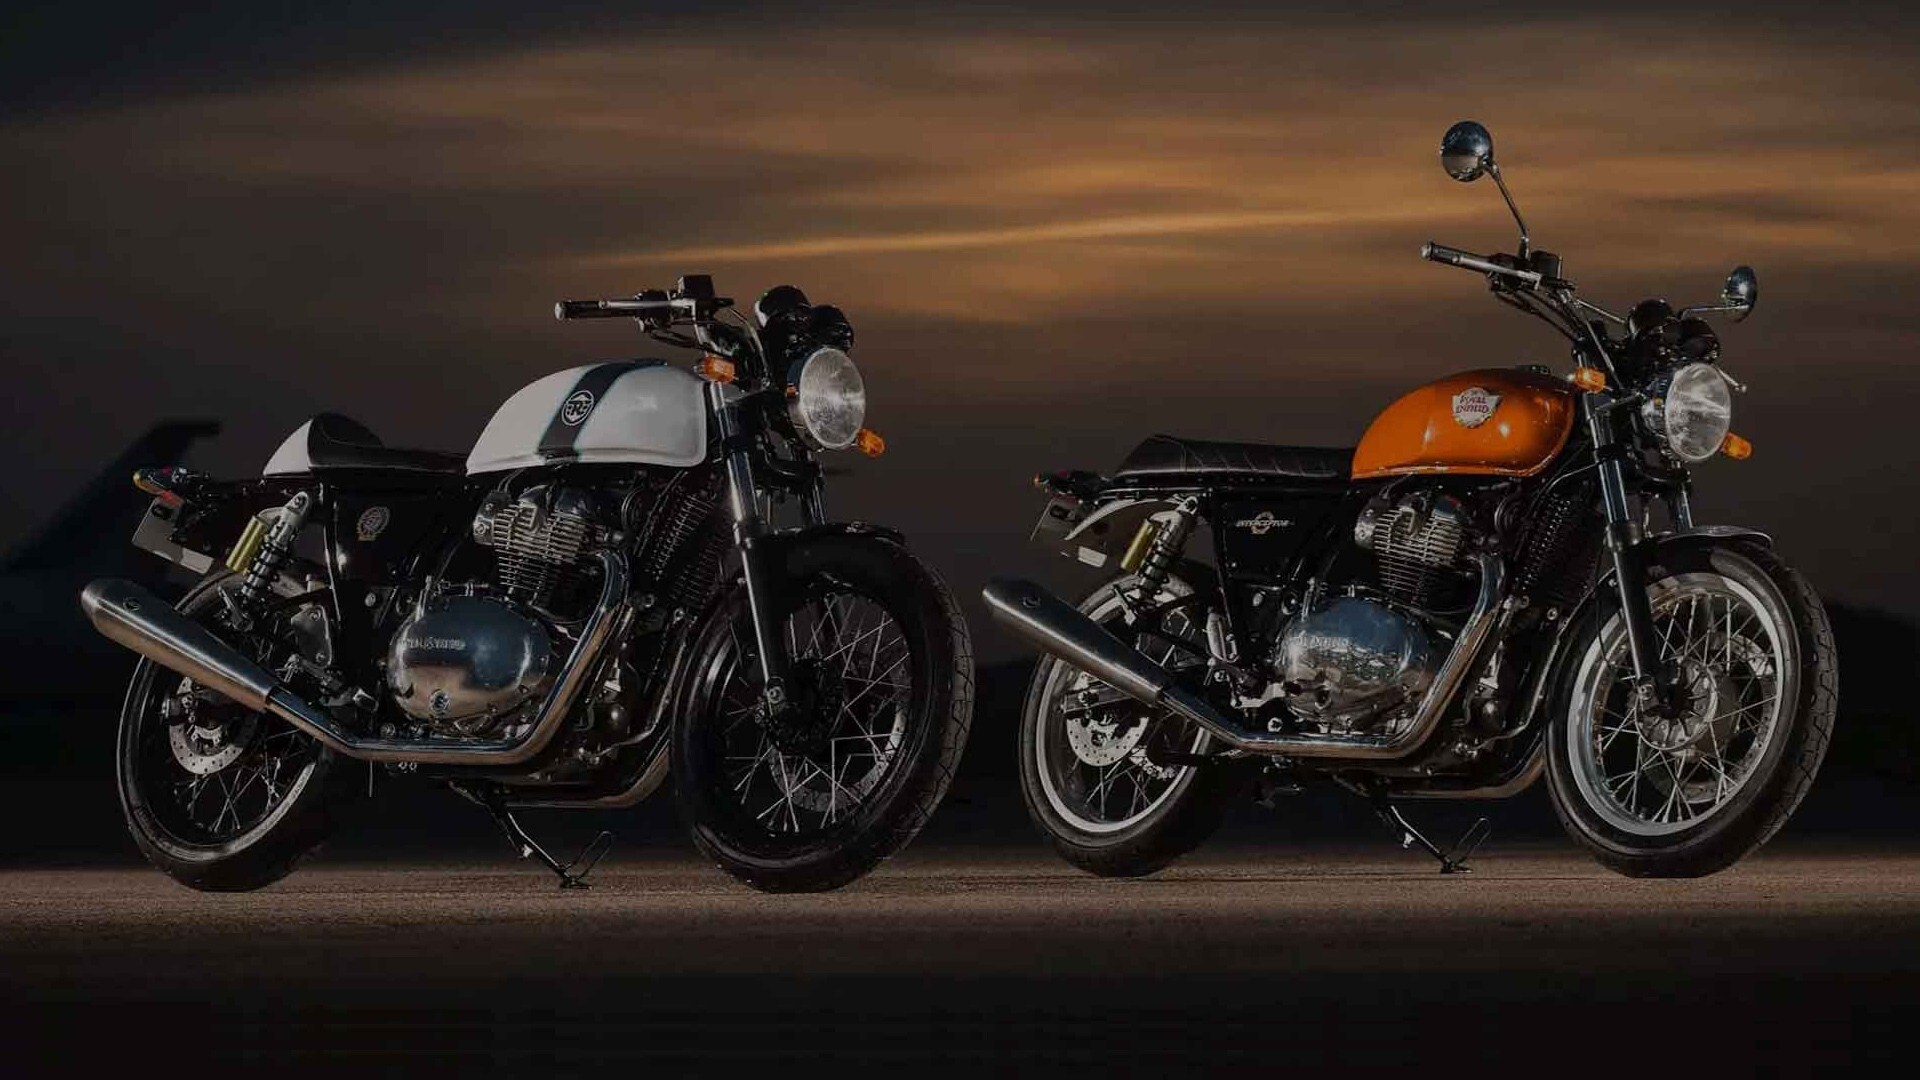 2018 Royal Enfield Interceptor 650 And Continental Gt 650 Bike Hd Wallpapers